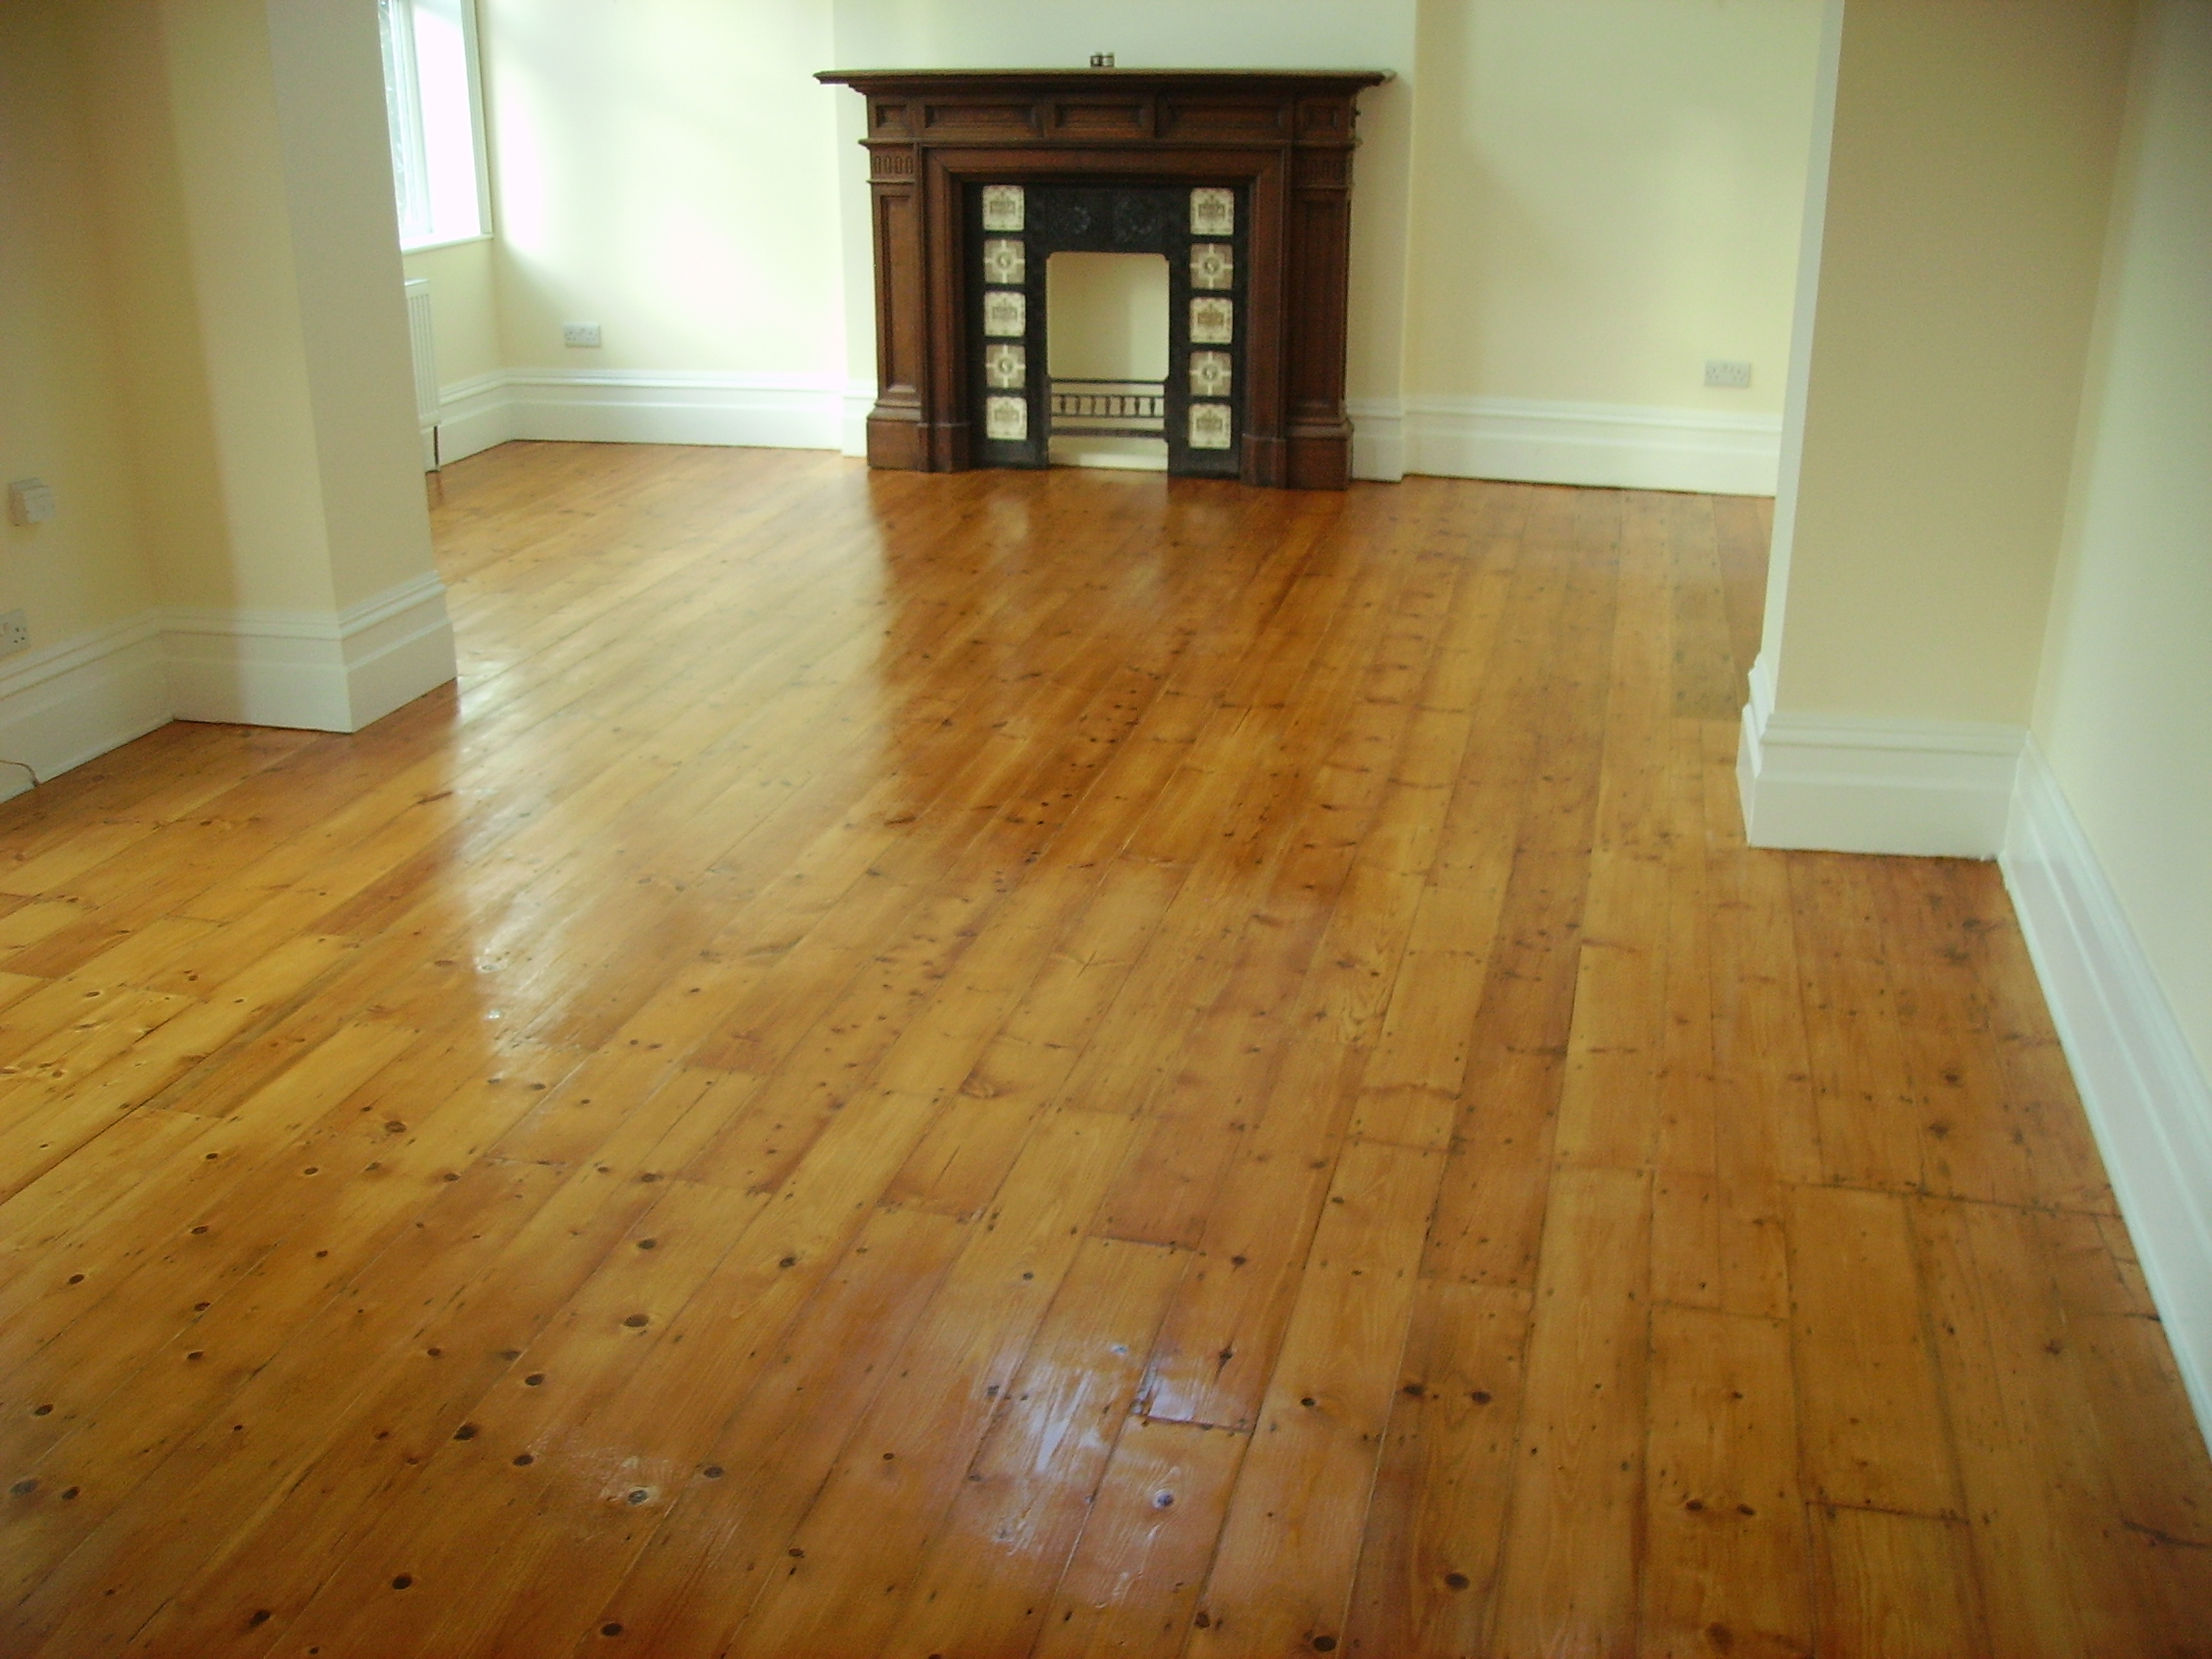 Light Pine Flooring Sanding And Sealing The Old Flooring Company